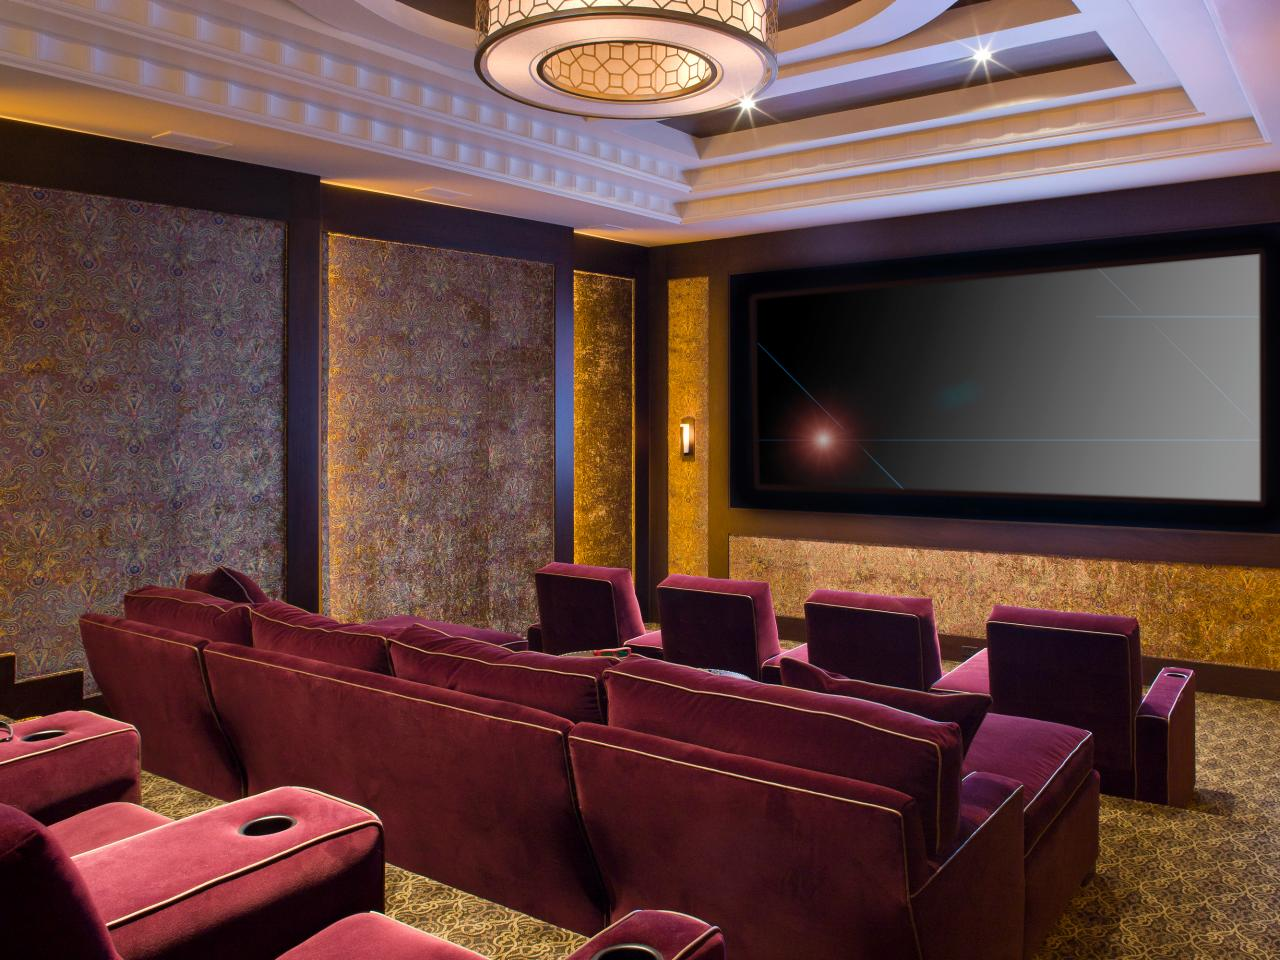 Home Theater Seating Ideas: Pictures, Options, Tips & Ideas  HGTV